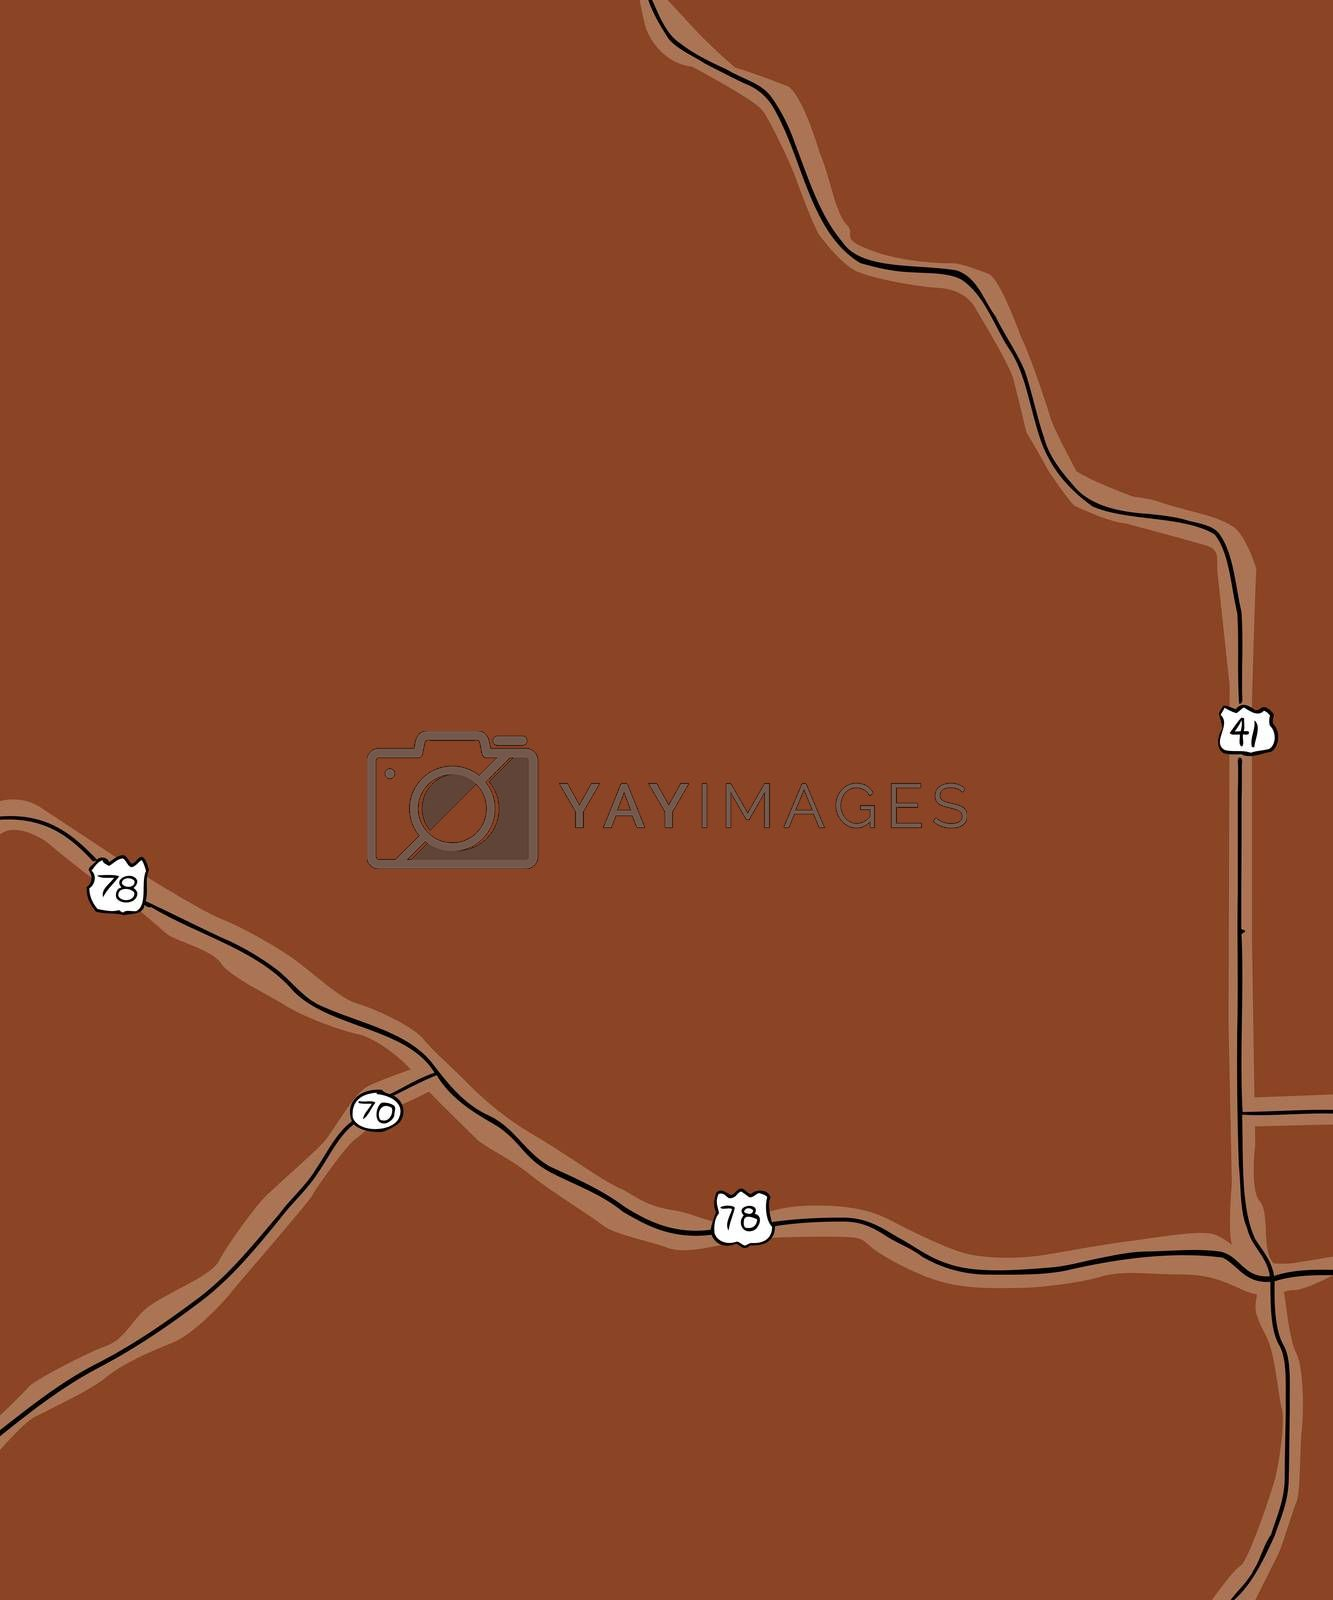 Brown hand drawn map of county roads for part of Georgia in the United States